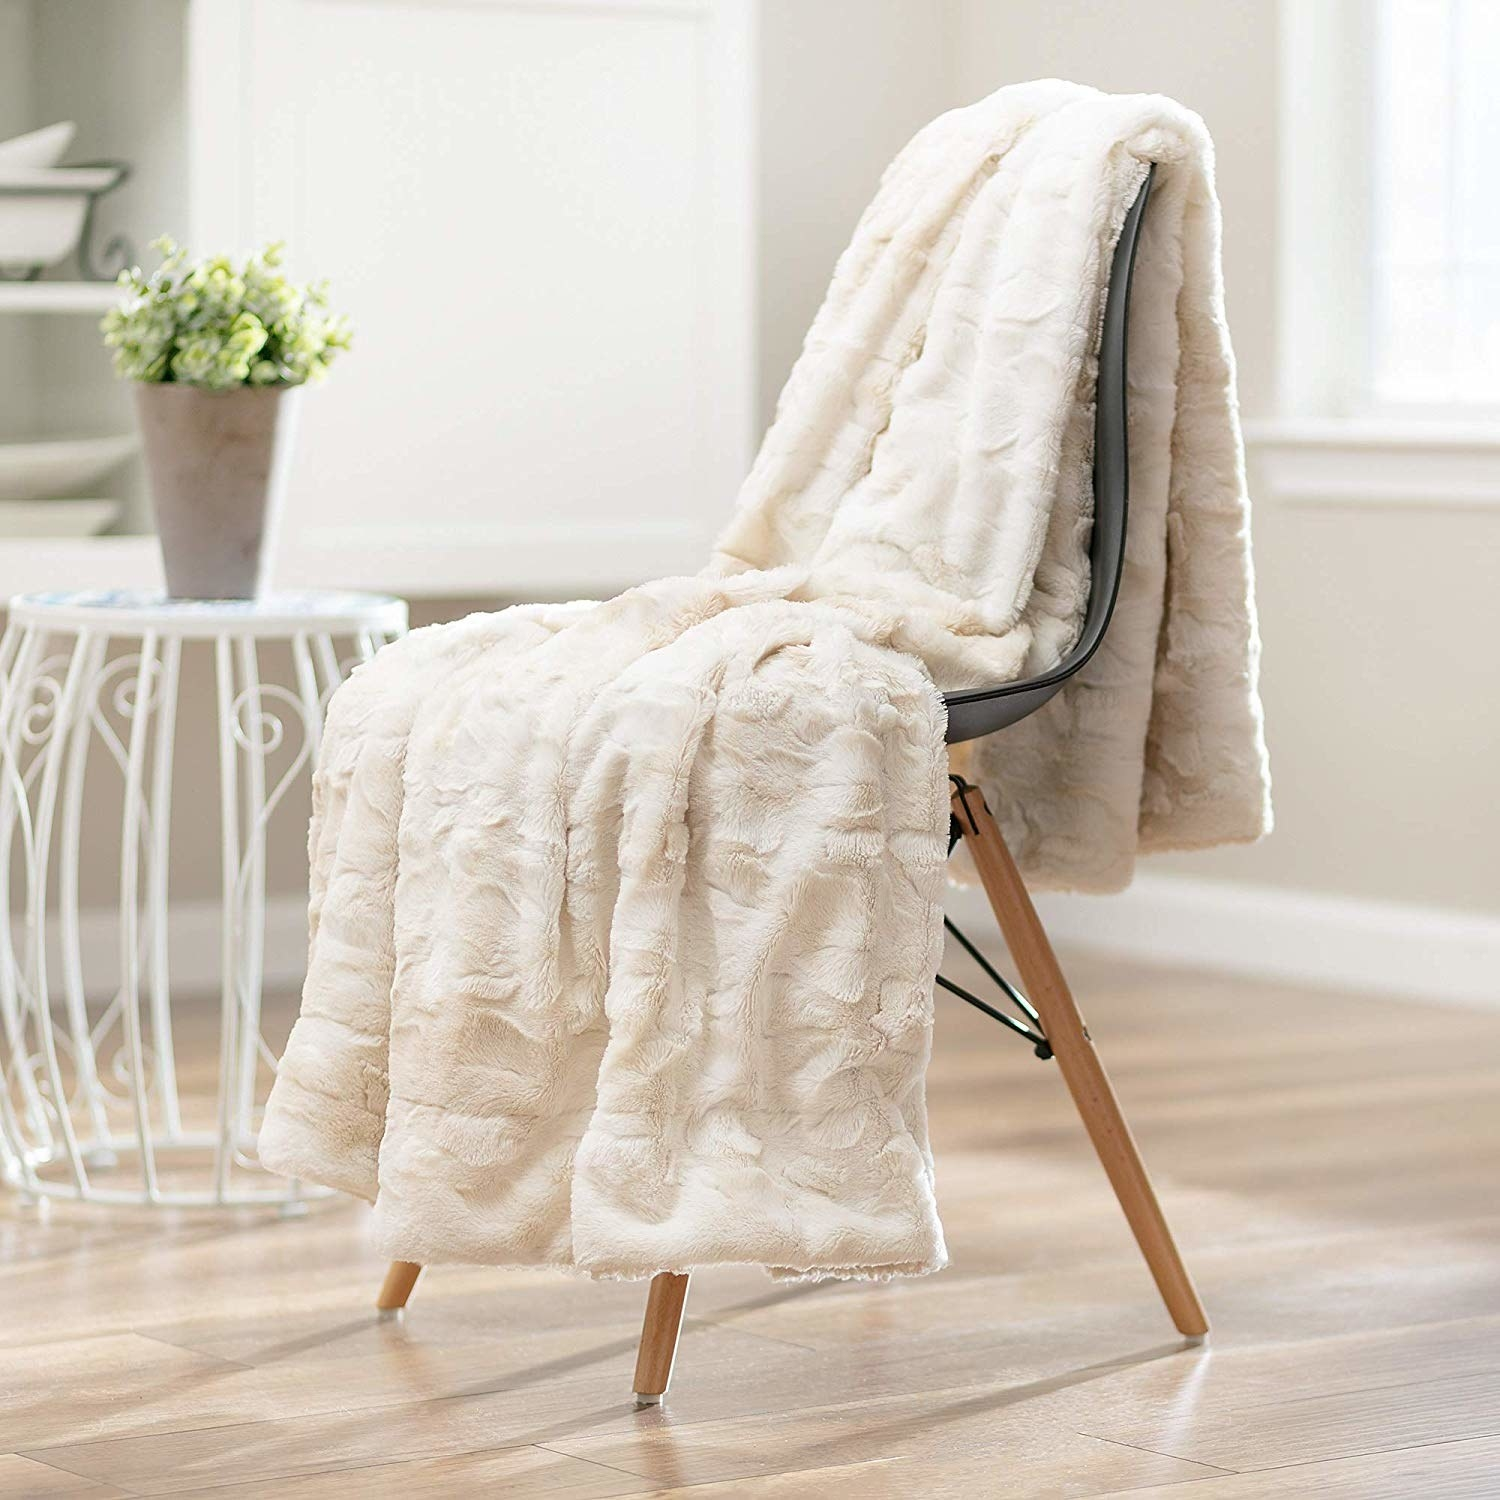 The throw blanket laid on a chair.